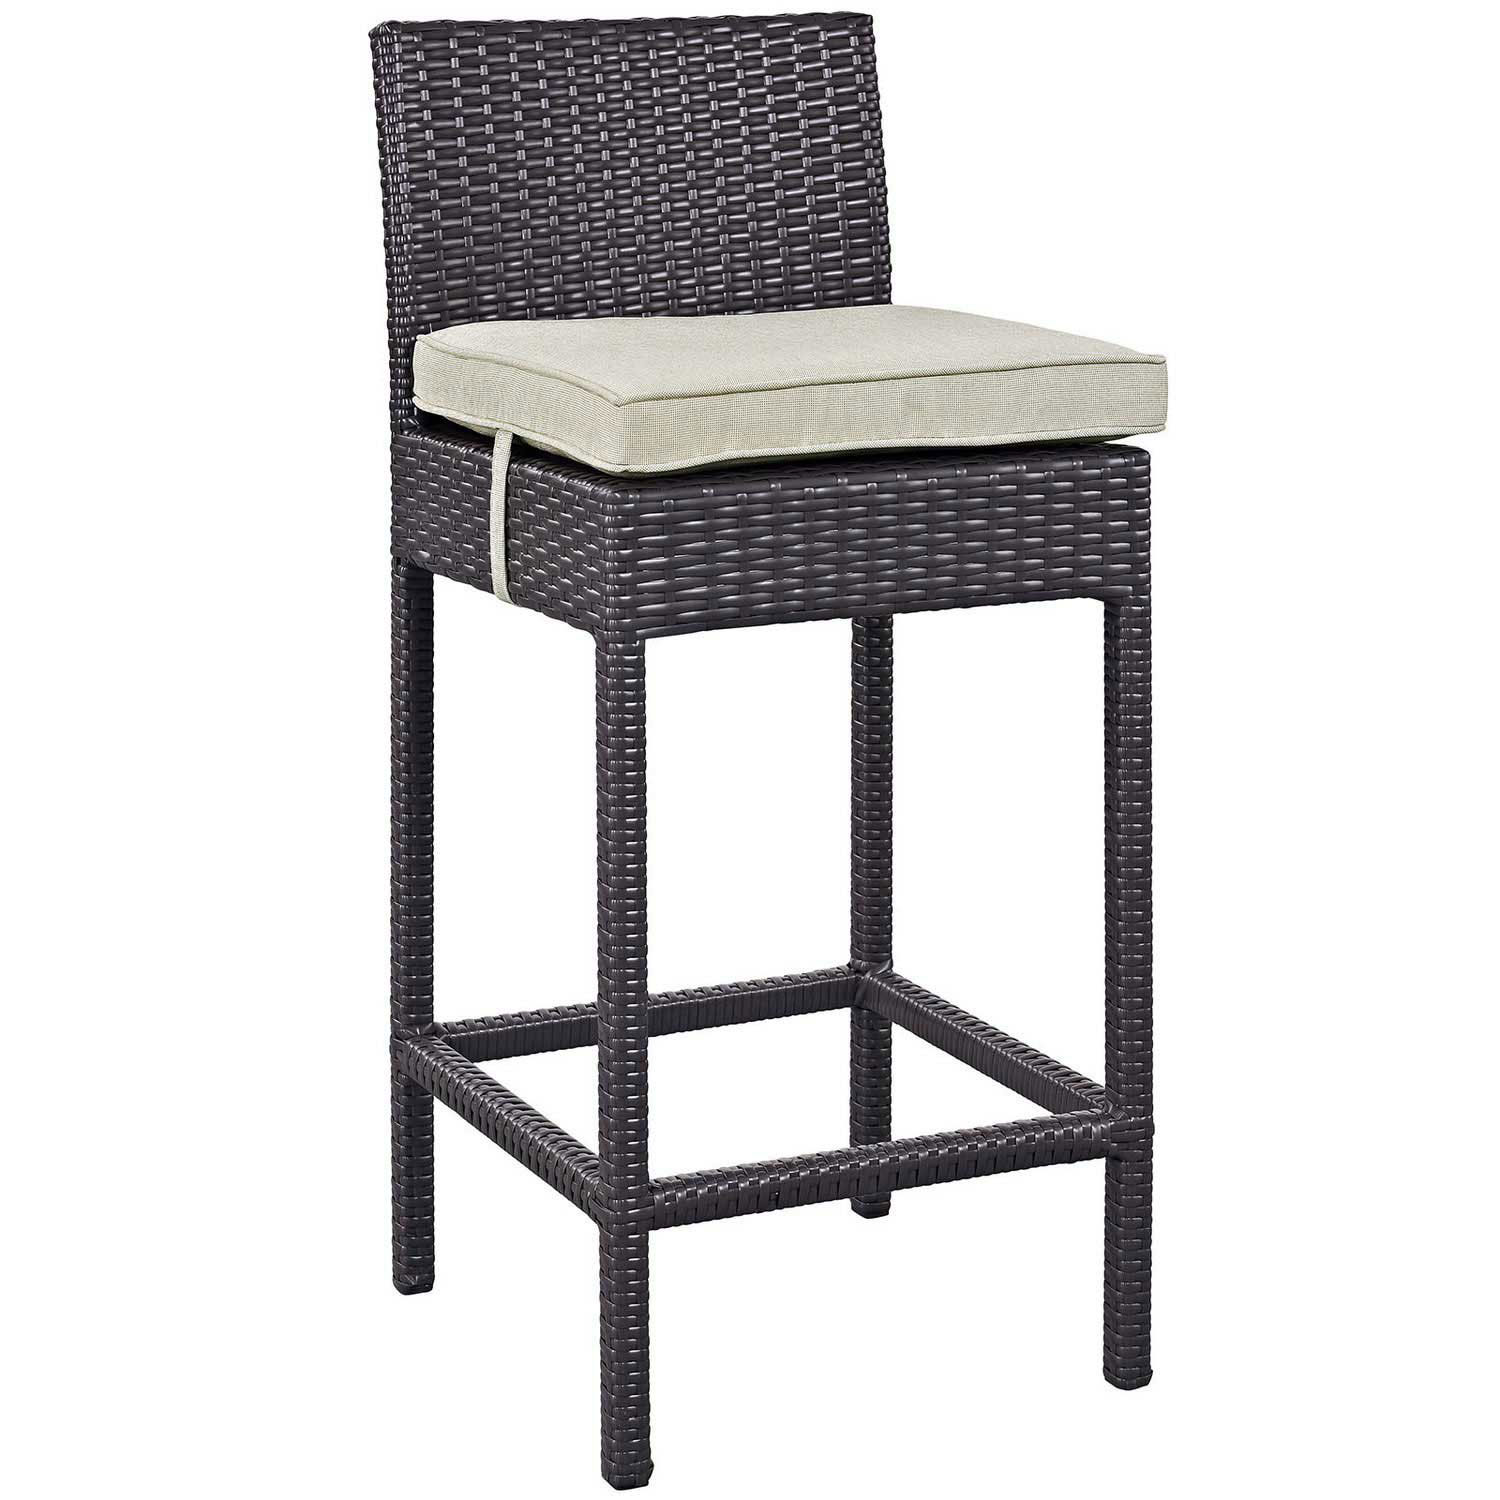 Modway Convene Outdoor Patio Fabric Bar Stool - Espresso Beige